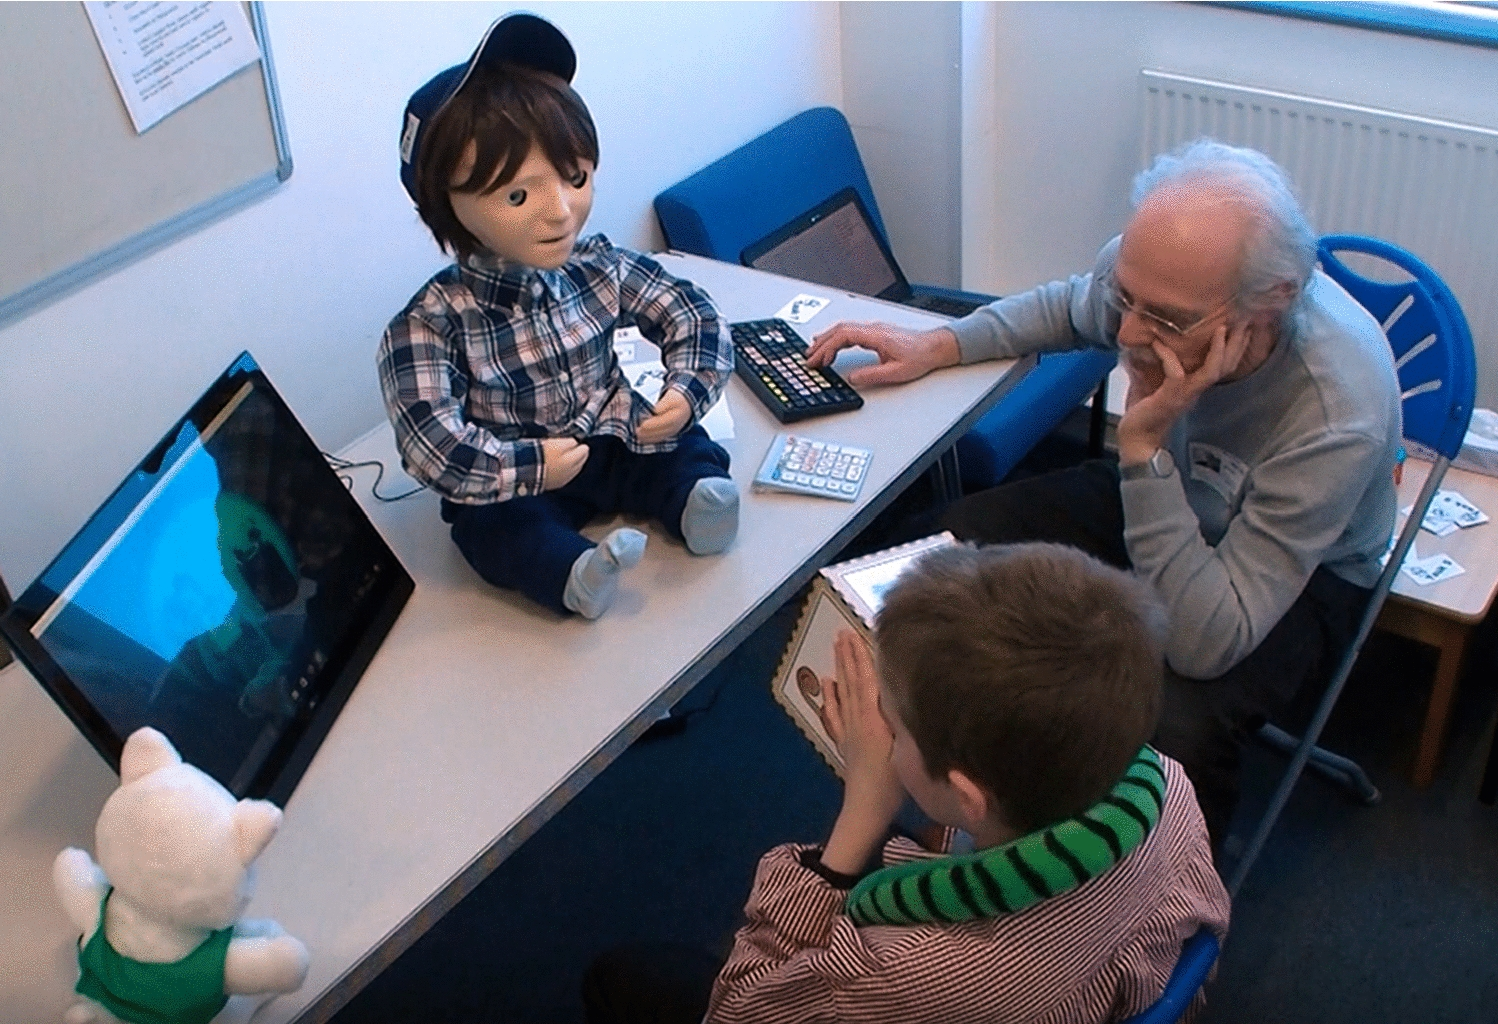 Developing Kaspar: A Humanoid Robot for Children with Autism